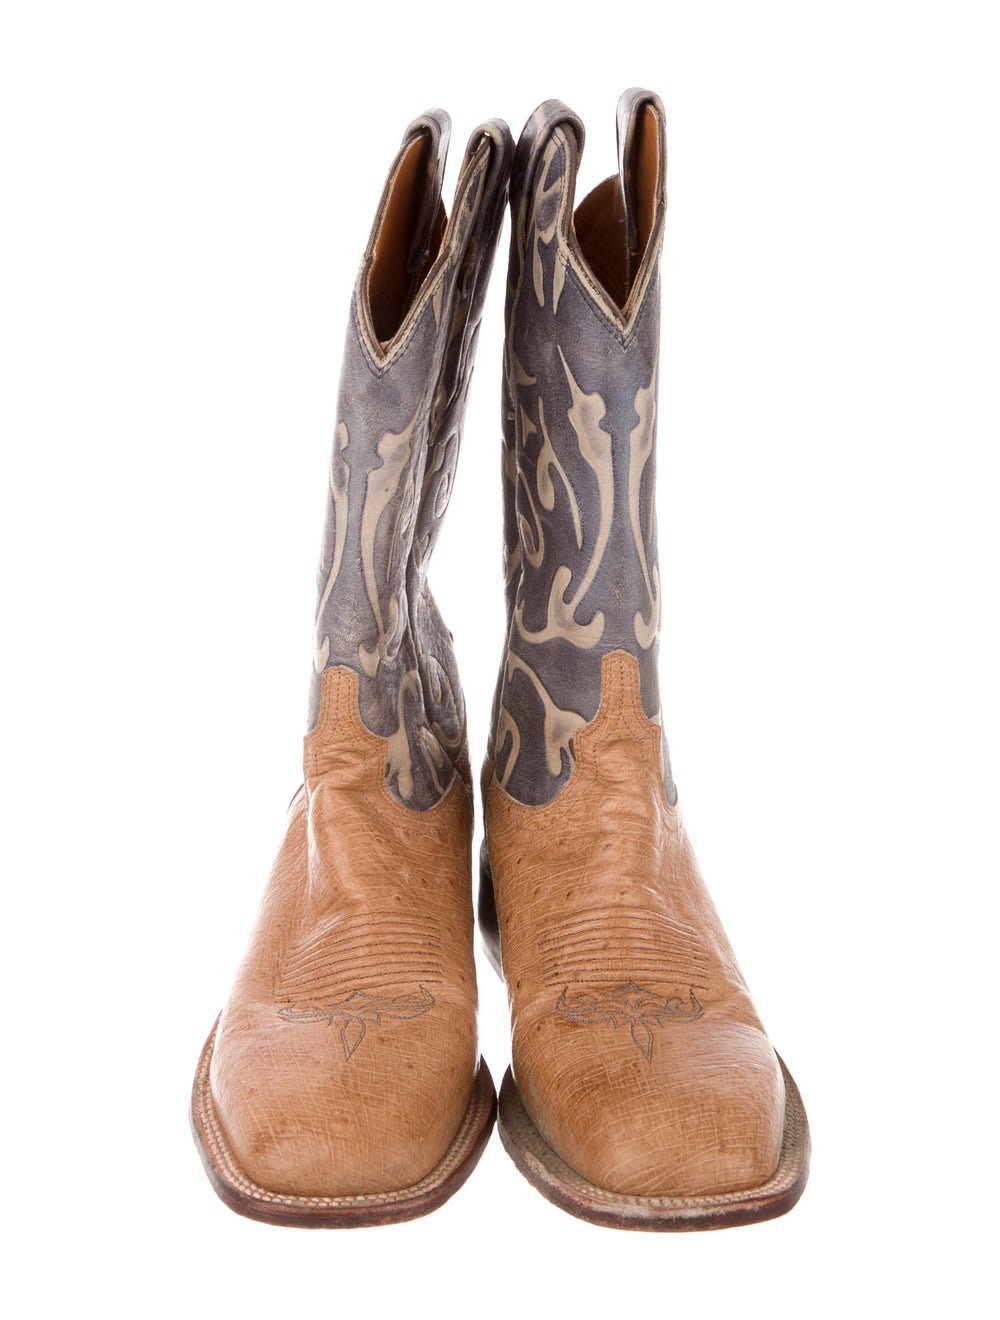 Lucchese Eel Skin Printed Western Boots - image 3